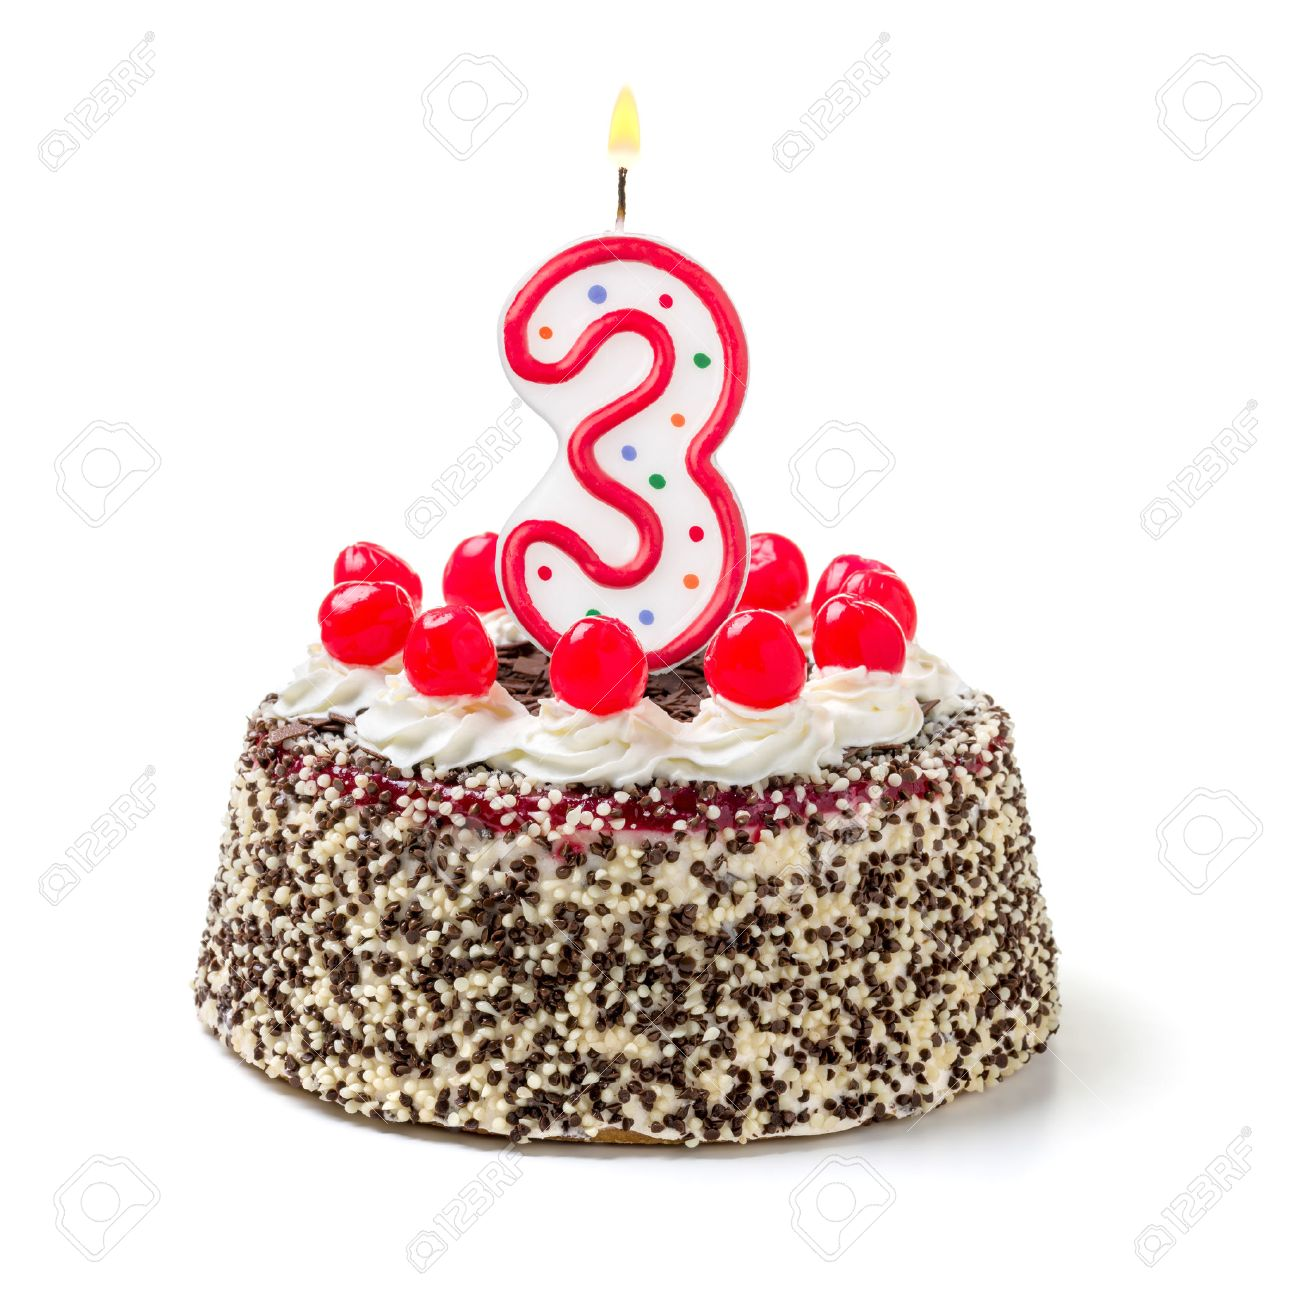 32503889-birthday-cake-with-burning-candle-number-3